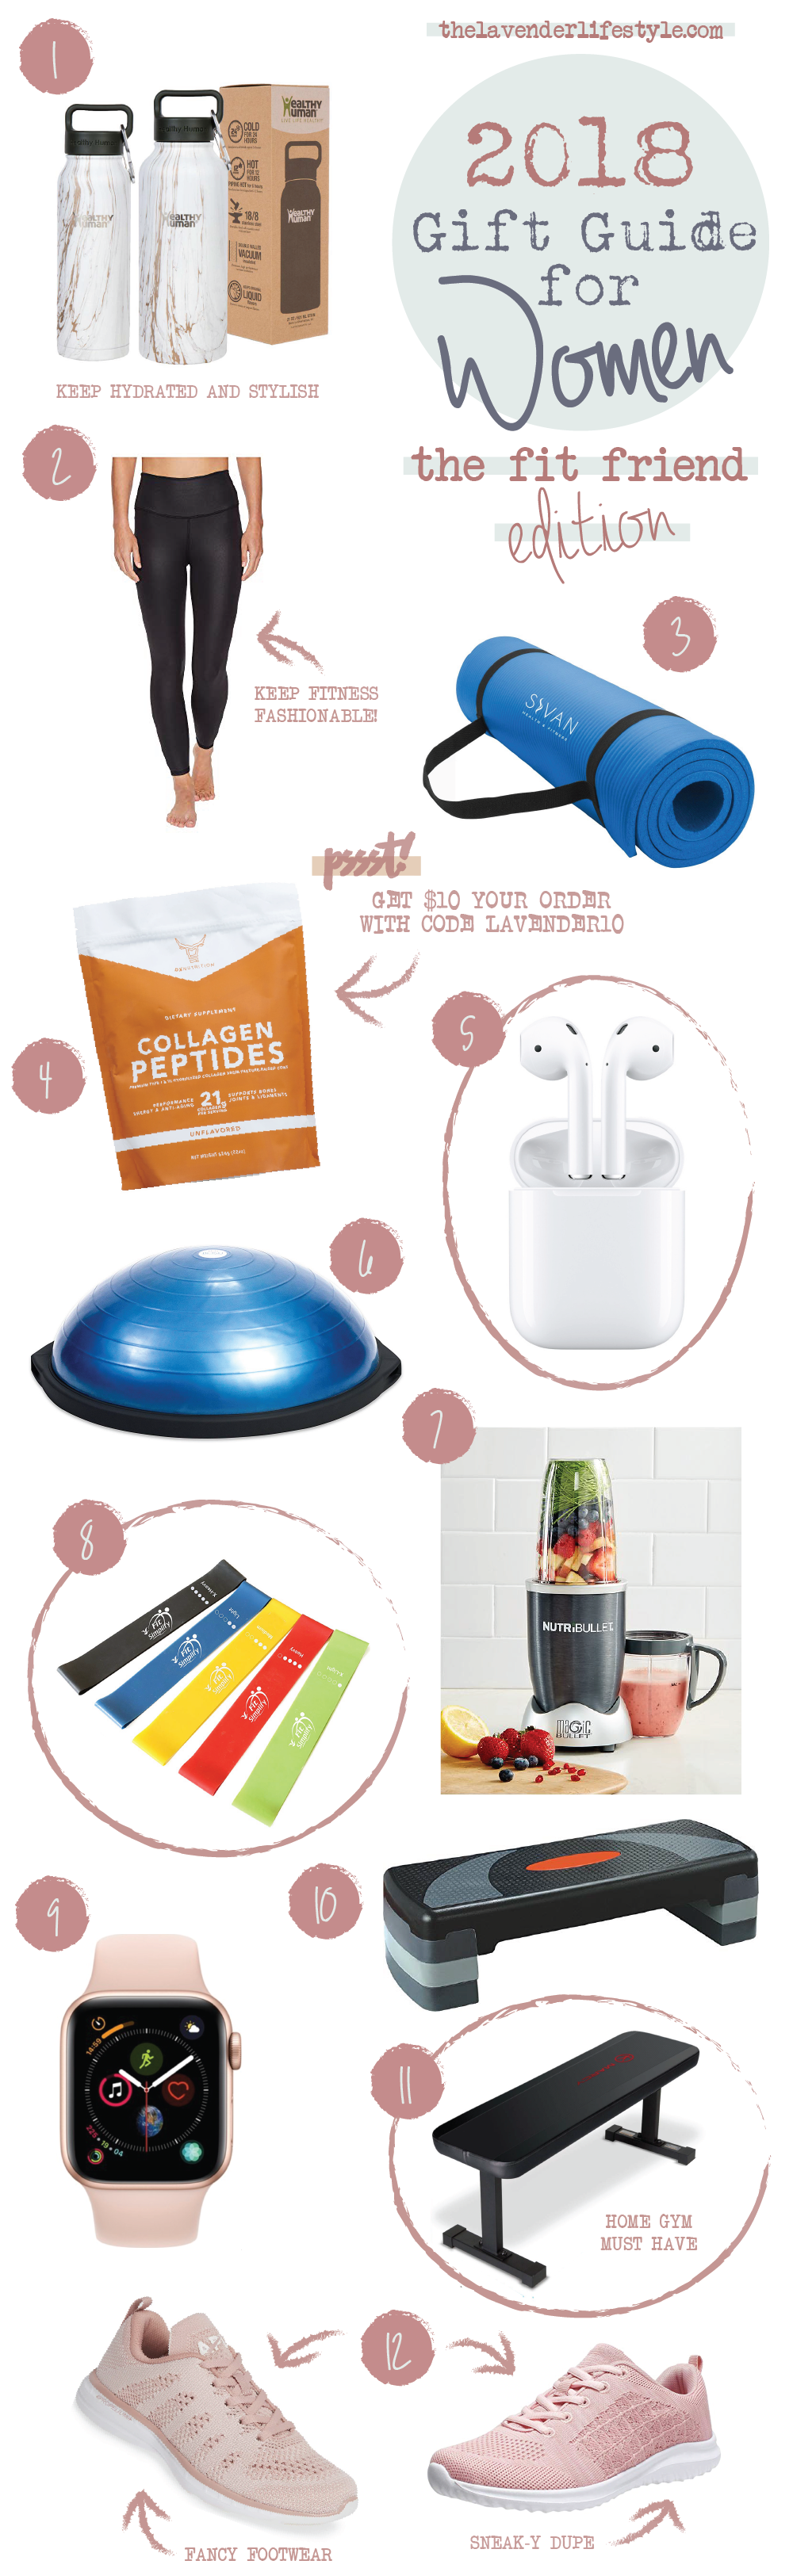 Click to Shop:  1.  Healthy Human Stainless Steel Insulated Water Bottle  | 2.  ALO 7/8 High Waist Airbrush Leggings  | 3.  Sivan Health and Fitness Comfort Foam Yoga Mat  | 4.  Ox Nutrition Collagen Peptides  | 5.  Apple AirPods  | 6.  Bosu Balance Trainer  | 7.  NutriBullet High-Speed Blender  | 8.  Fit Simplify Resistance Loop Exercise Bands  | 9.  Apple Watch Series 4  | 10.  KLB Sport Adjustable Workout Stepper  | 11.  Marcy Utility Flat Bench  | 12.  APL Techloom Pro Running Shoe  –  Fancy Footwear   OR   YILAN Fashion Sneakers  –  Sneak-y Dupe